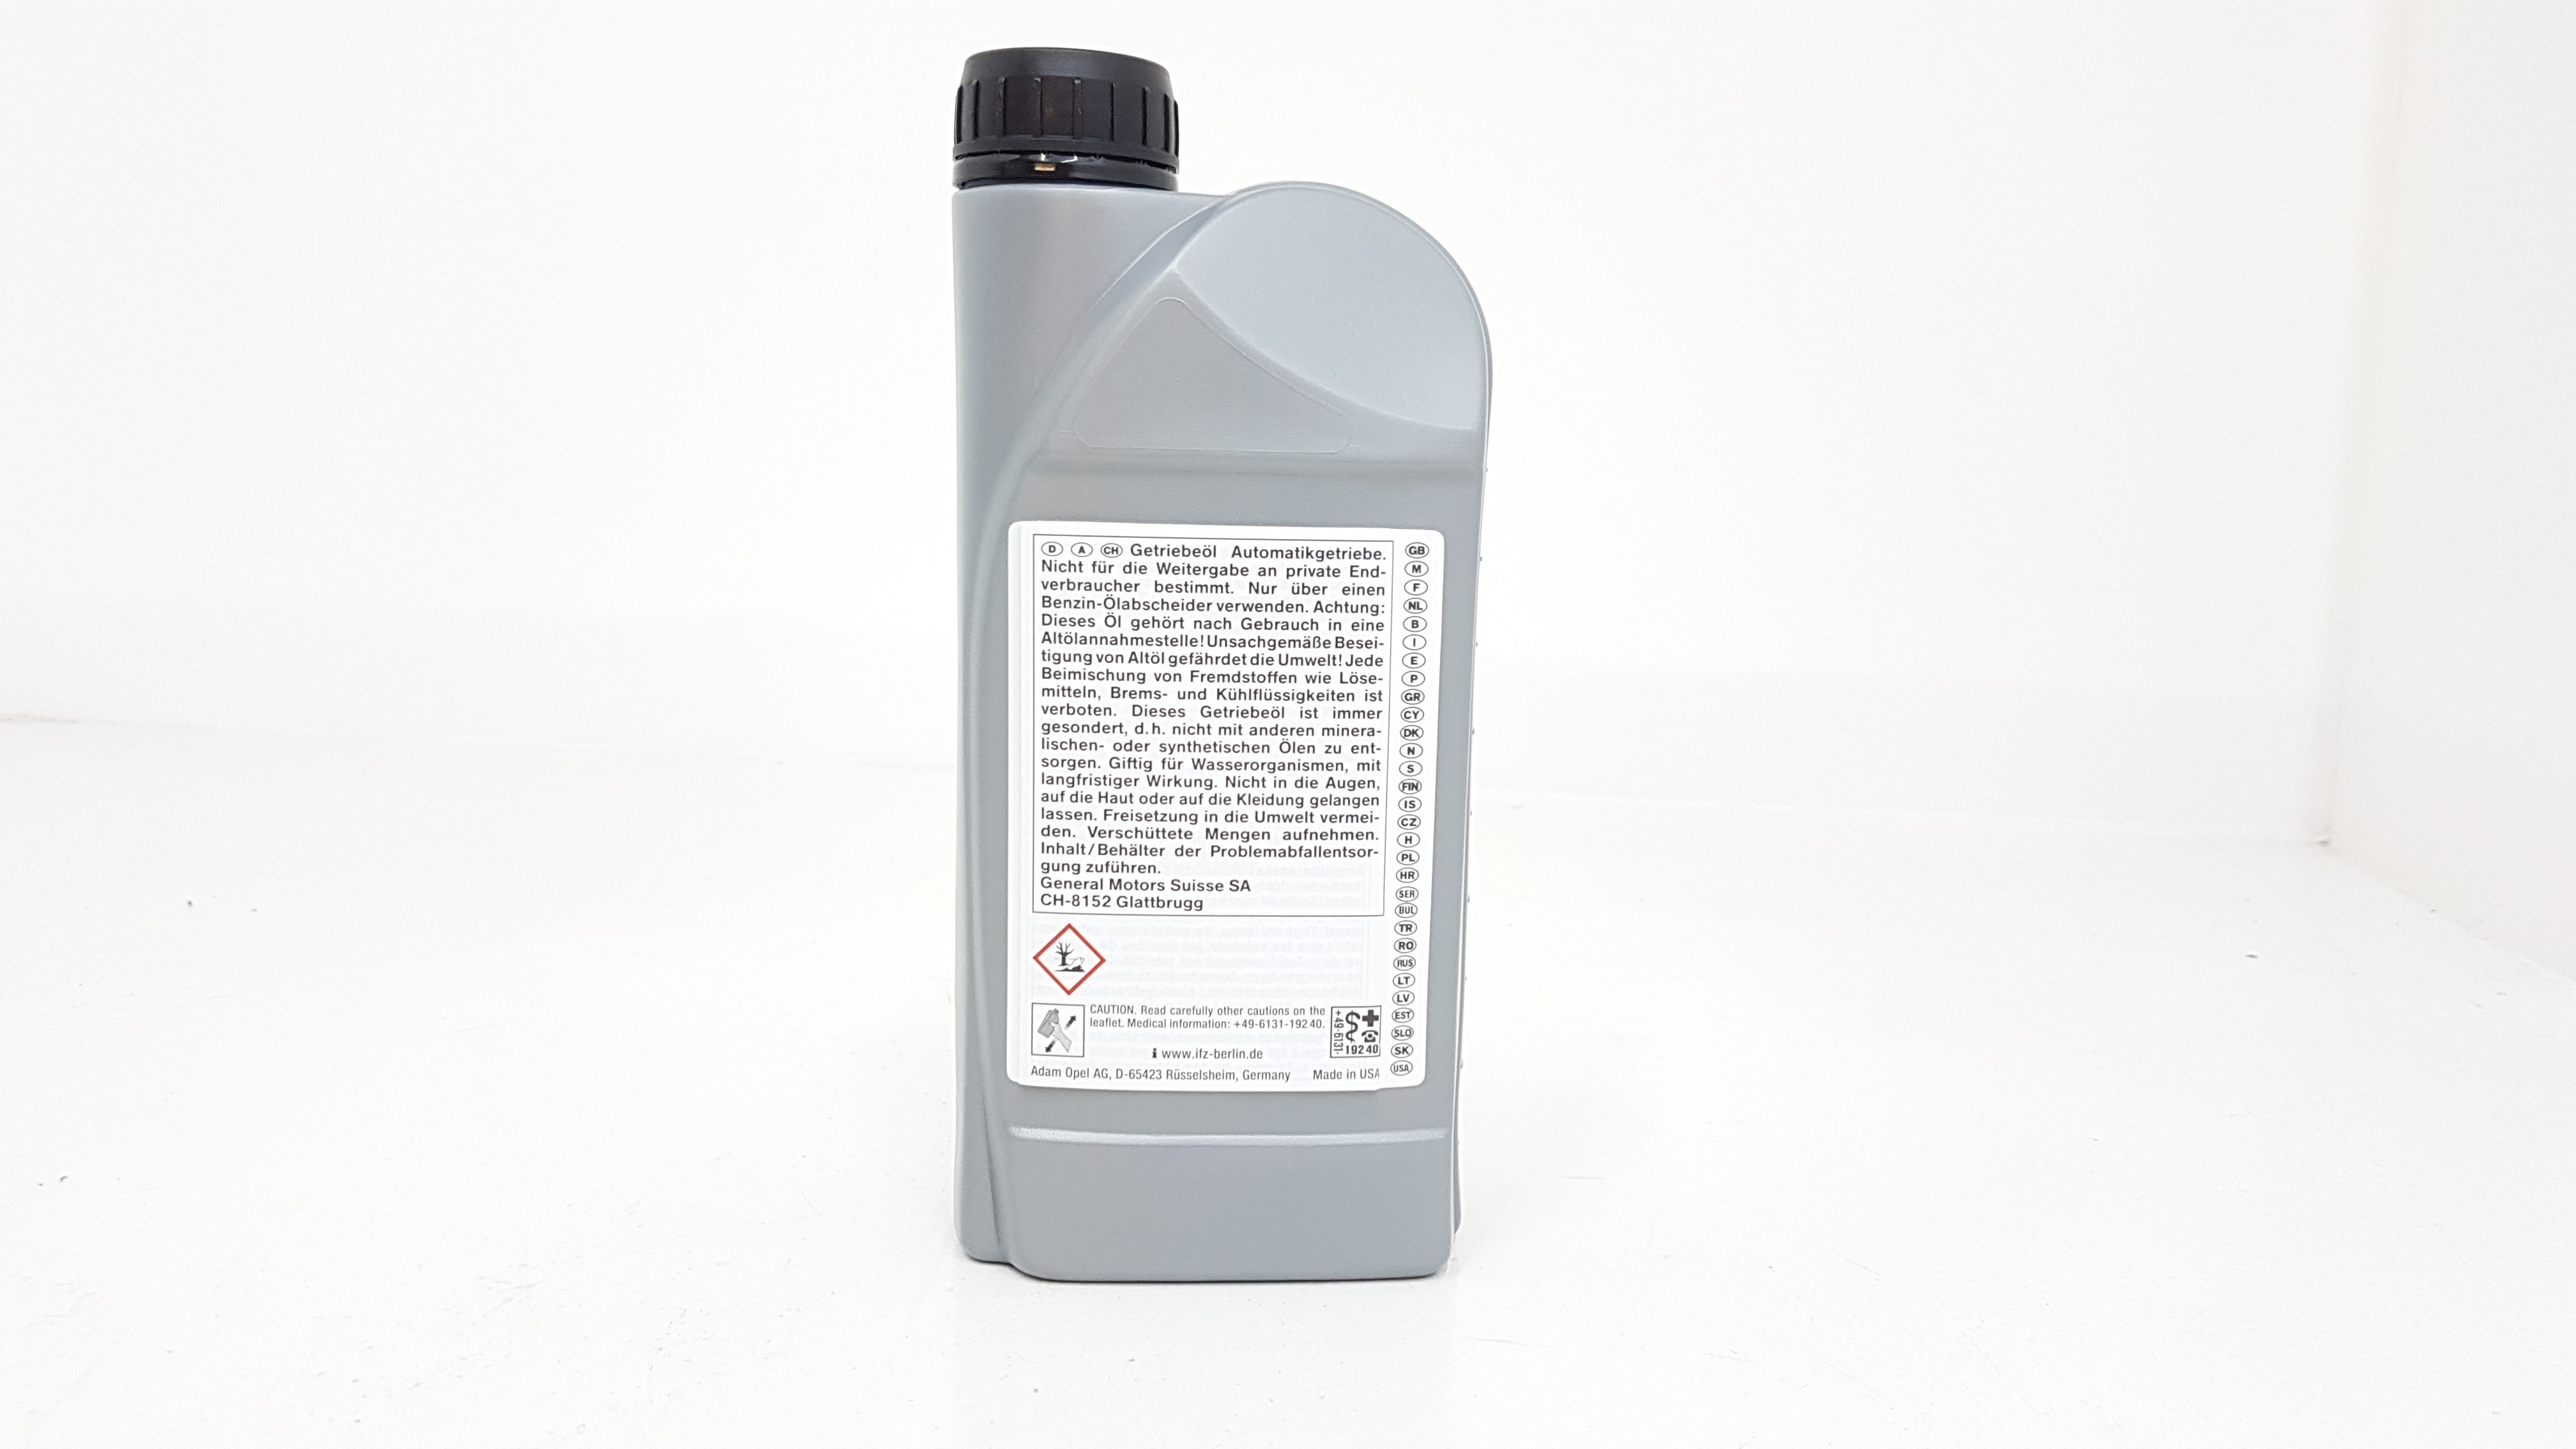 Genuine Vauxhall ATF 3309 Automatic Transmission Oil 1Litre